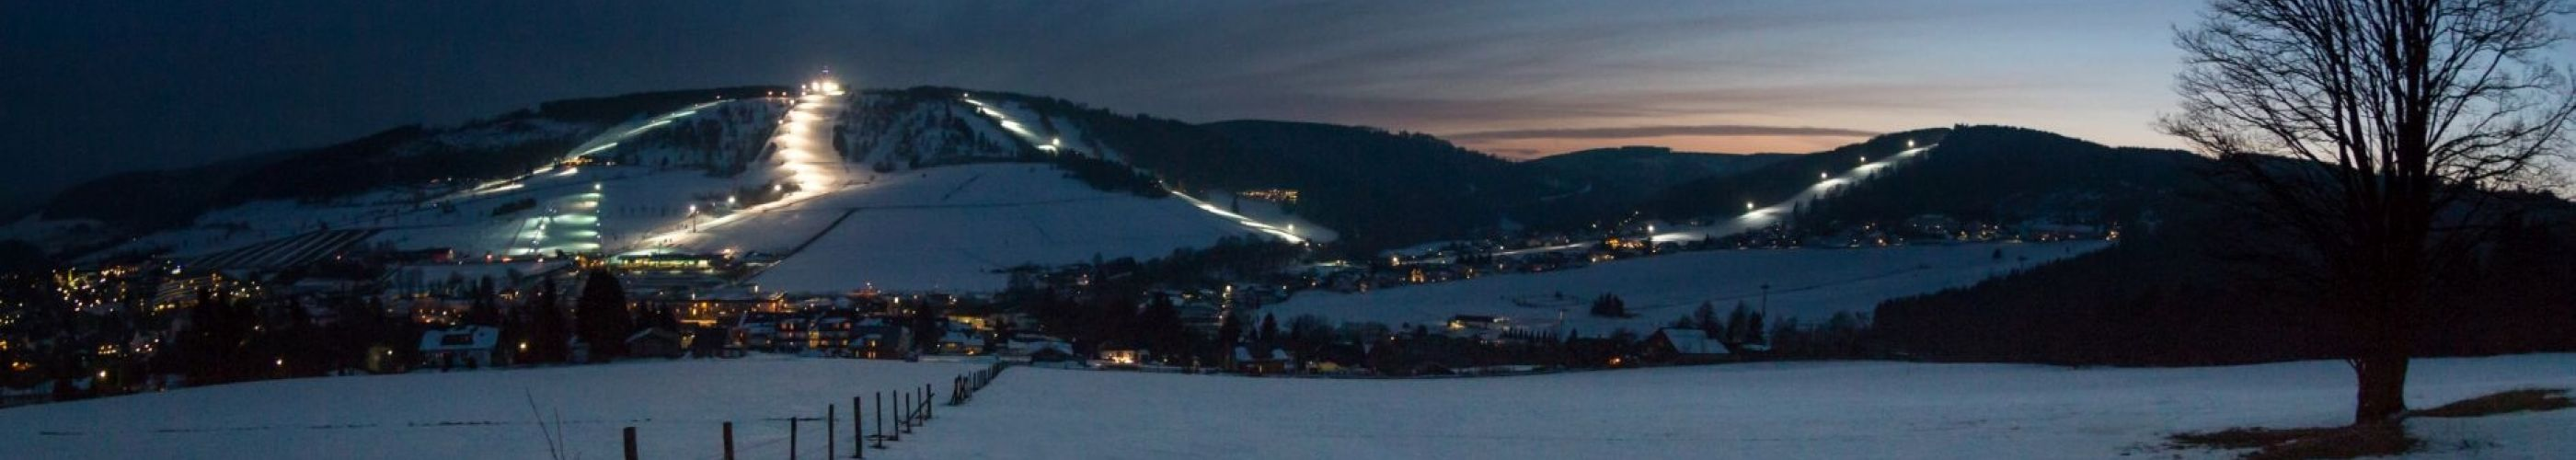 Flutlicht Ski in Willingen